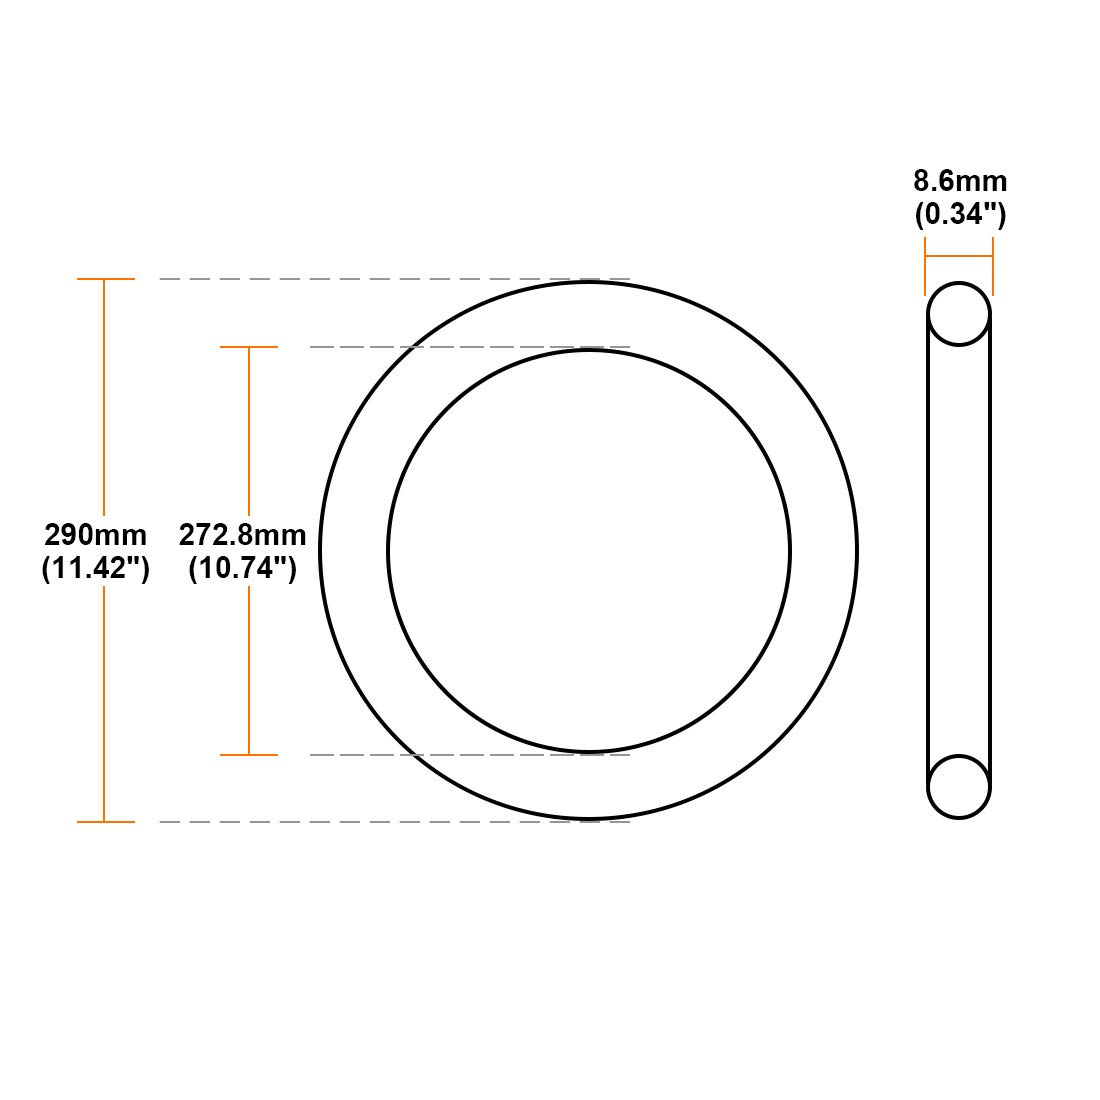 sourcing map O-Rings Nitrile Rubber 202.8mm Inner Diameter 220mm OD 8.6mm Width Round Seal Gasket